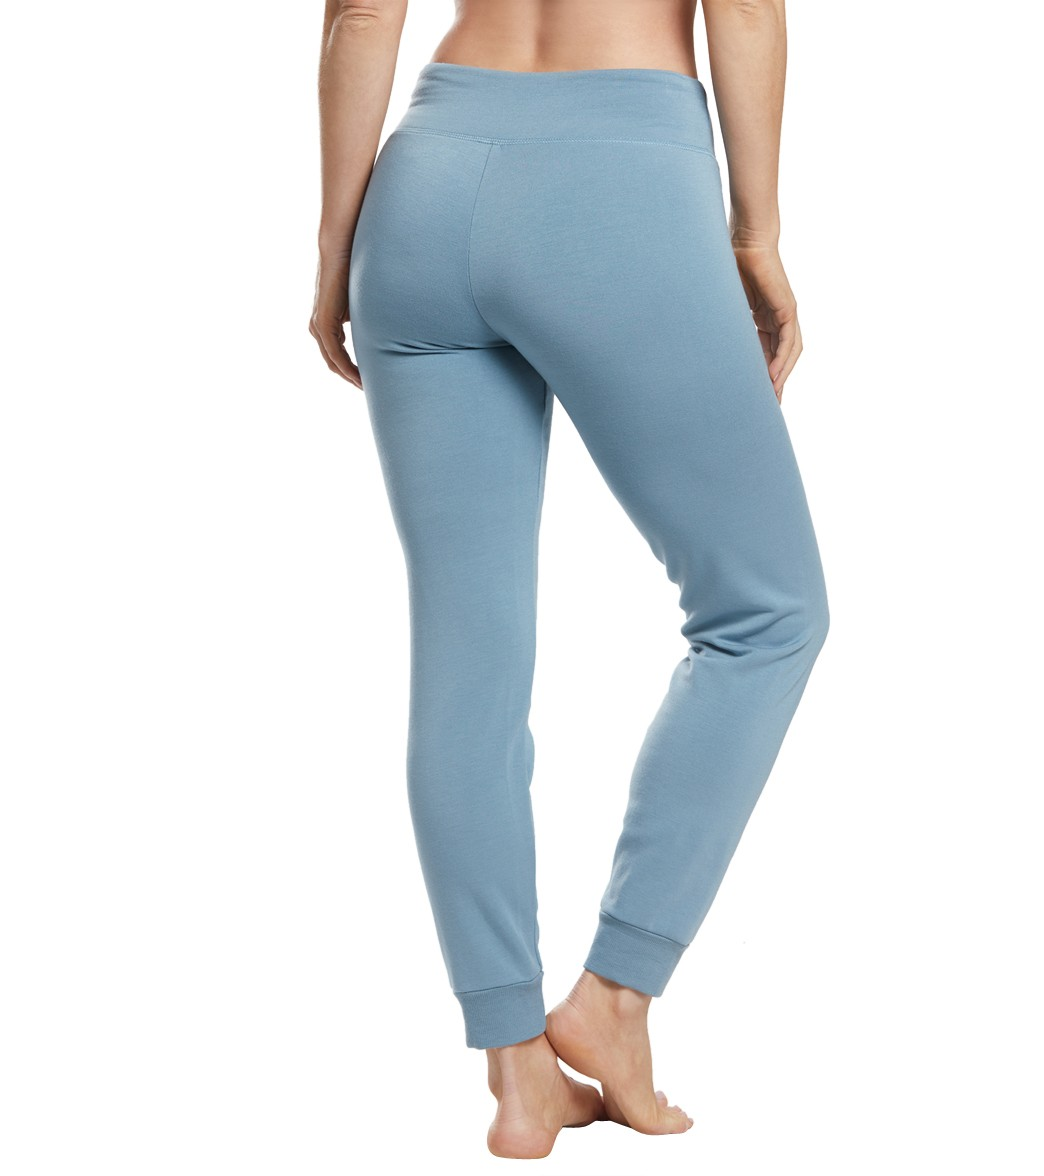 7d85660be2a8f Beyond Yoga Lounge Around Joggers at YogaOutlet.com - Free Shipping